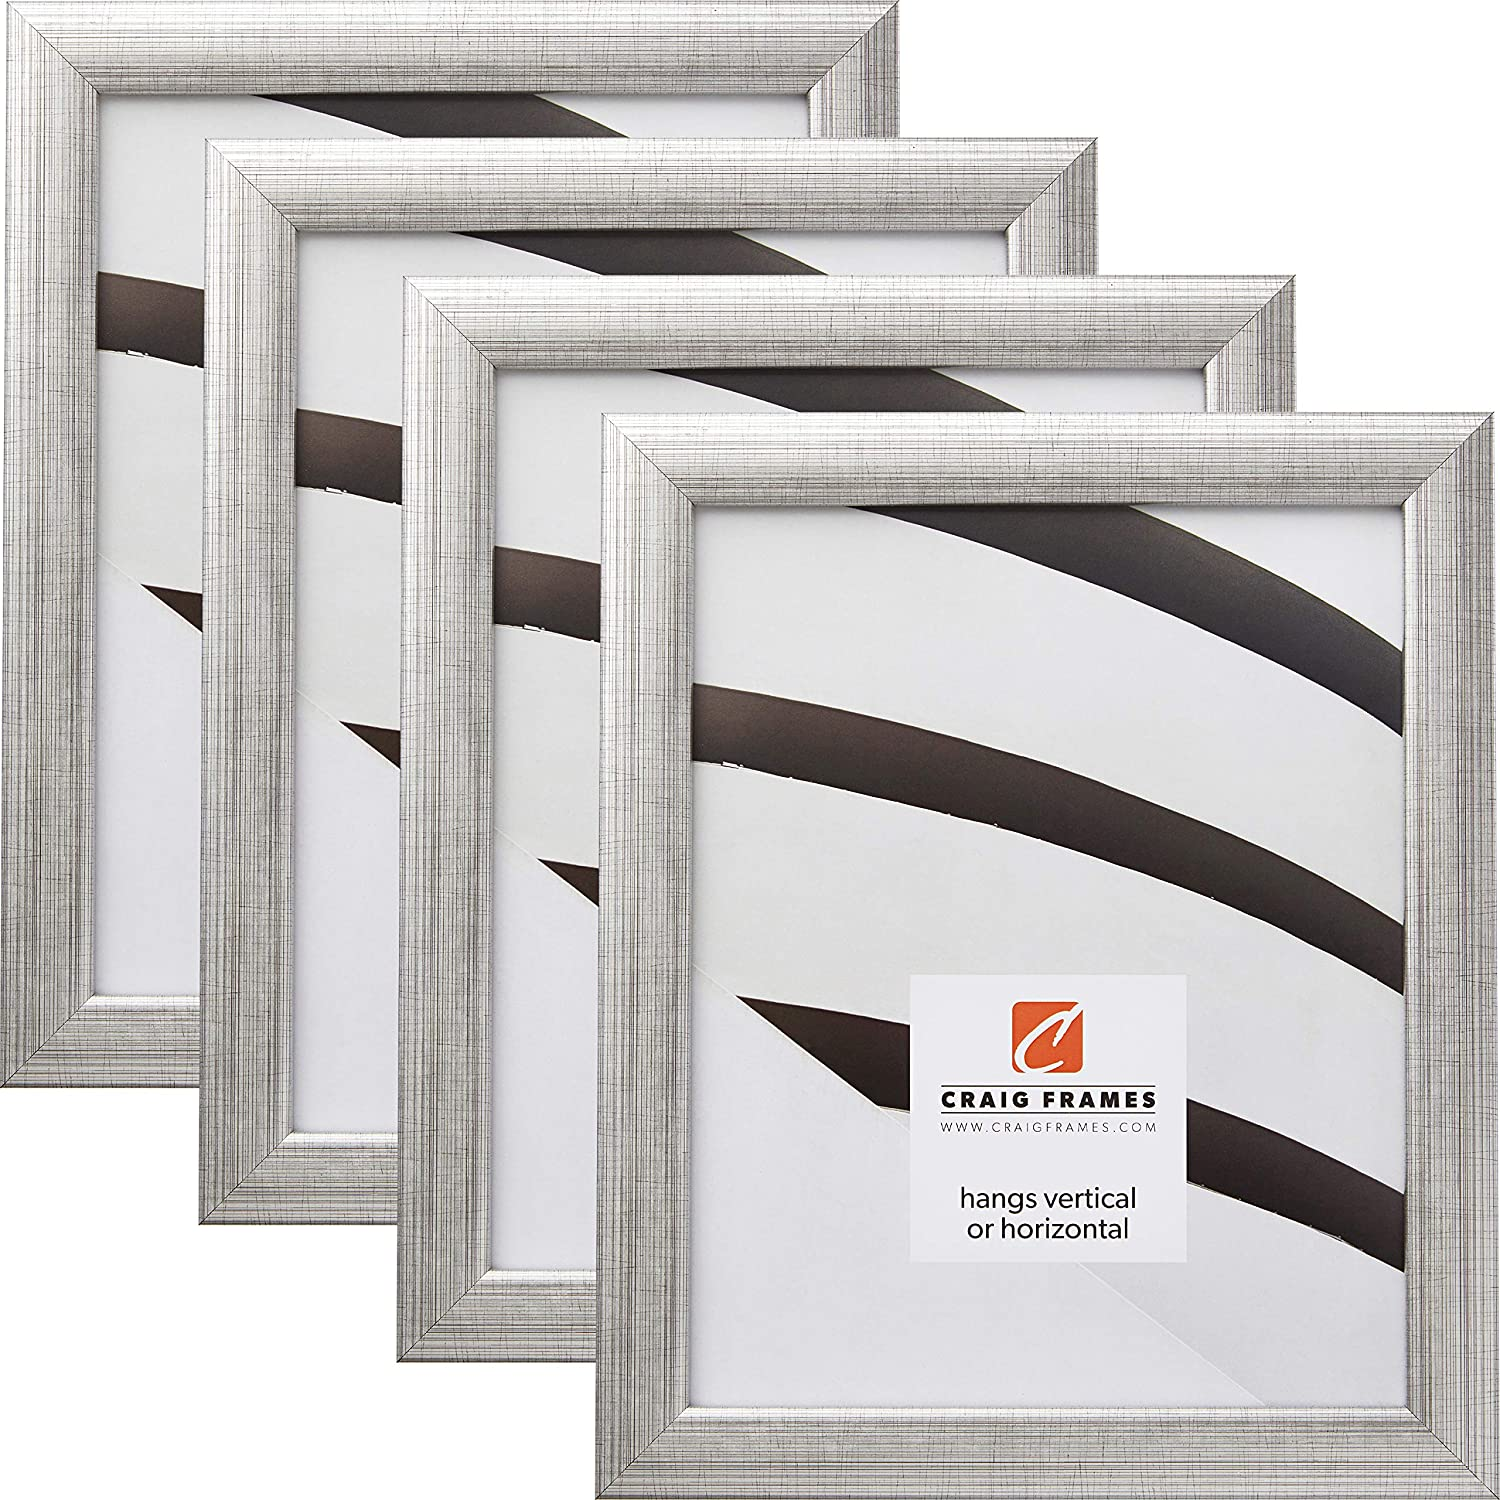 Craig Frames 23247944 8.5 x 11 Inch Picture Frame, Scratched Silver, Set of 4